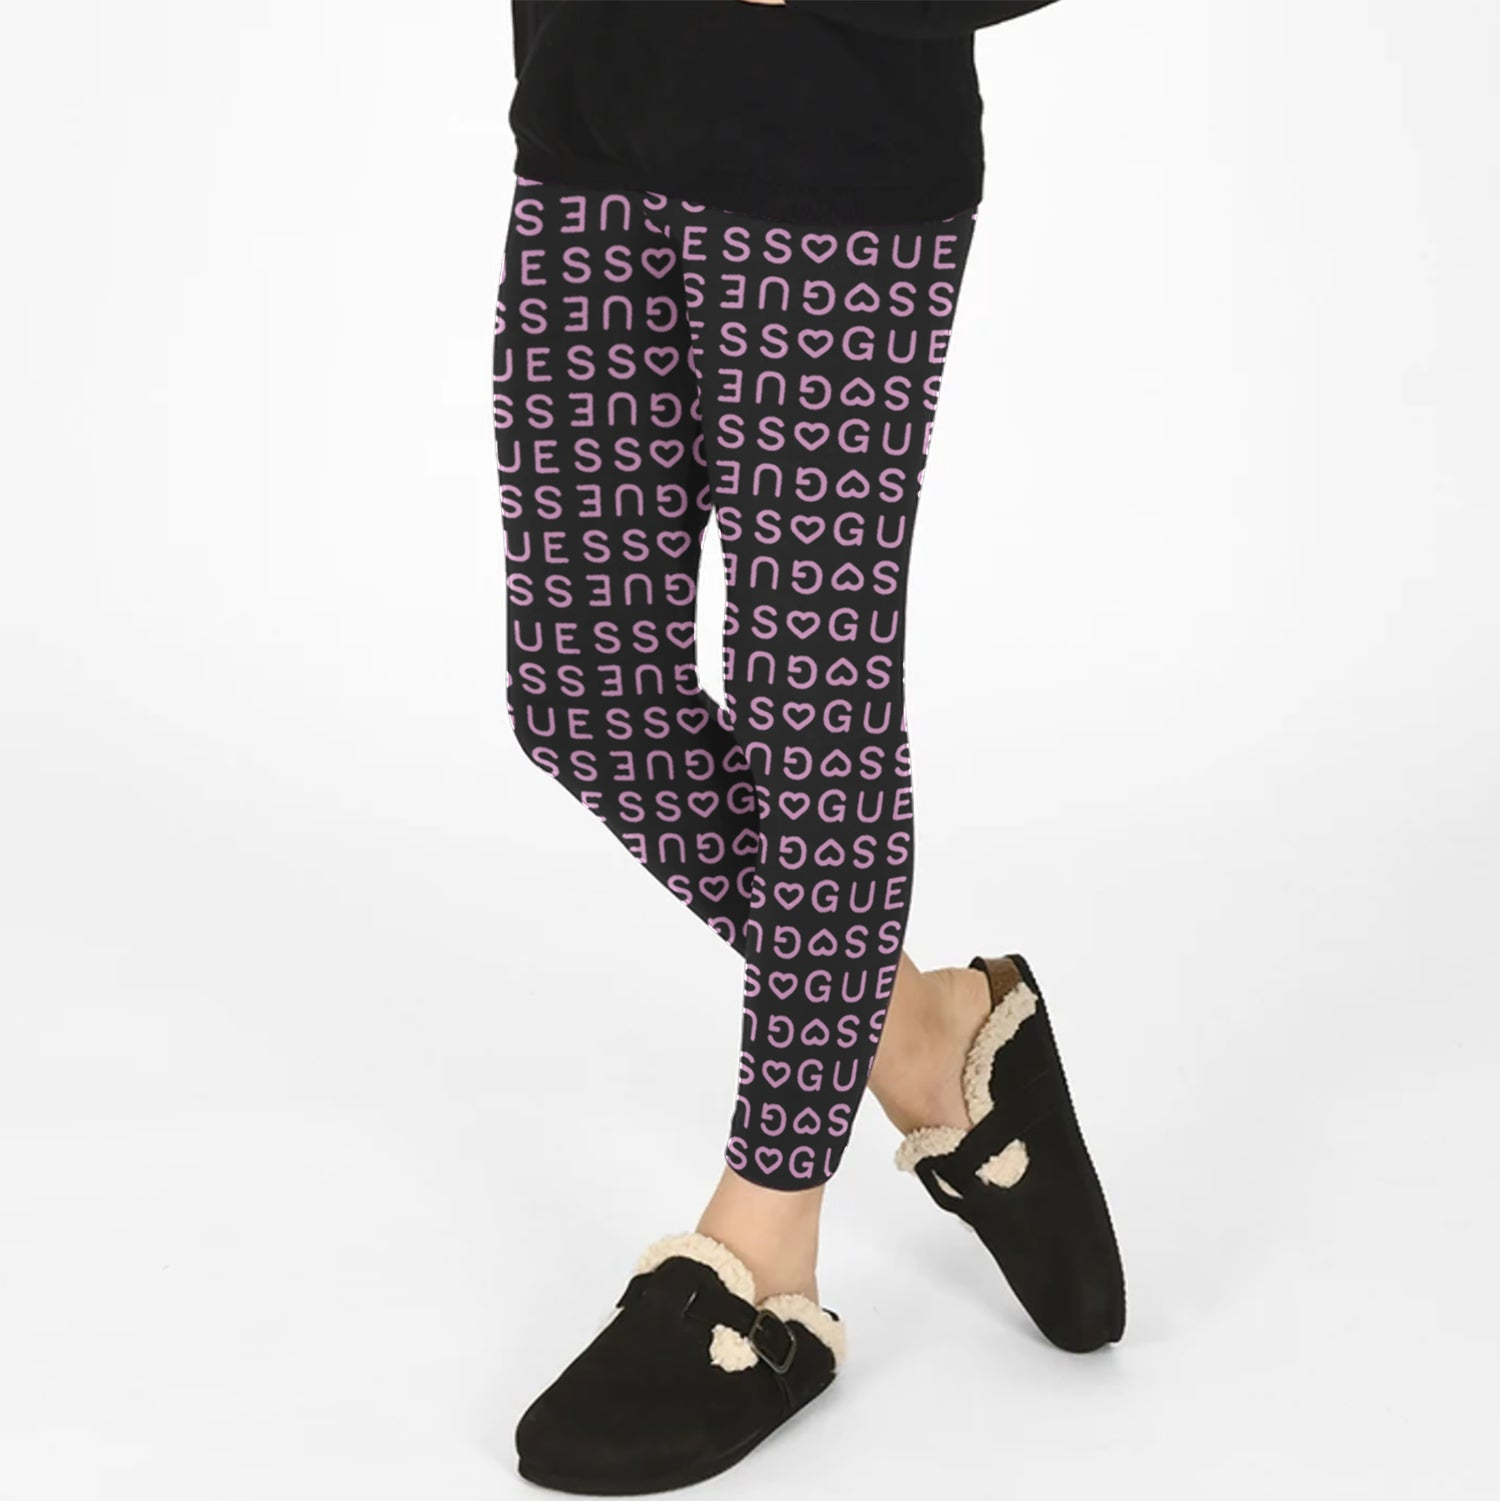 Guess Stylish Legging For Girls-Black with Guess Allover Print-BE12309